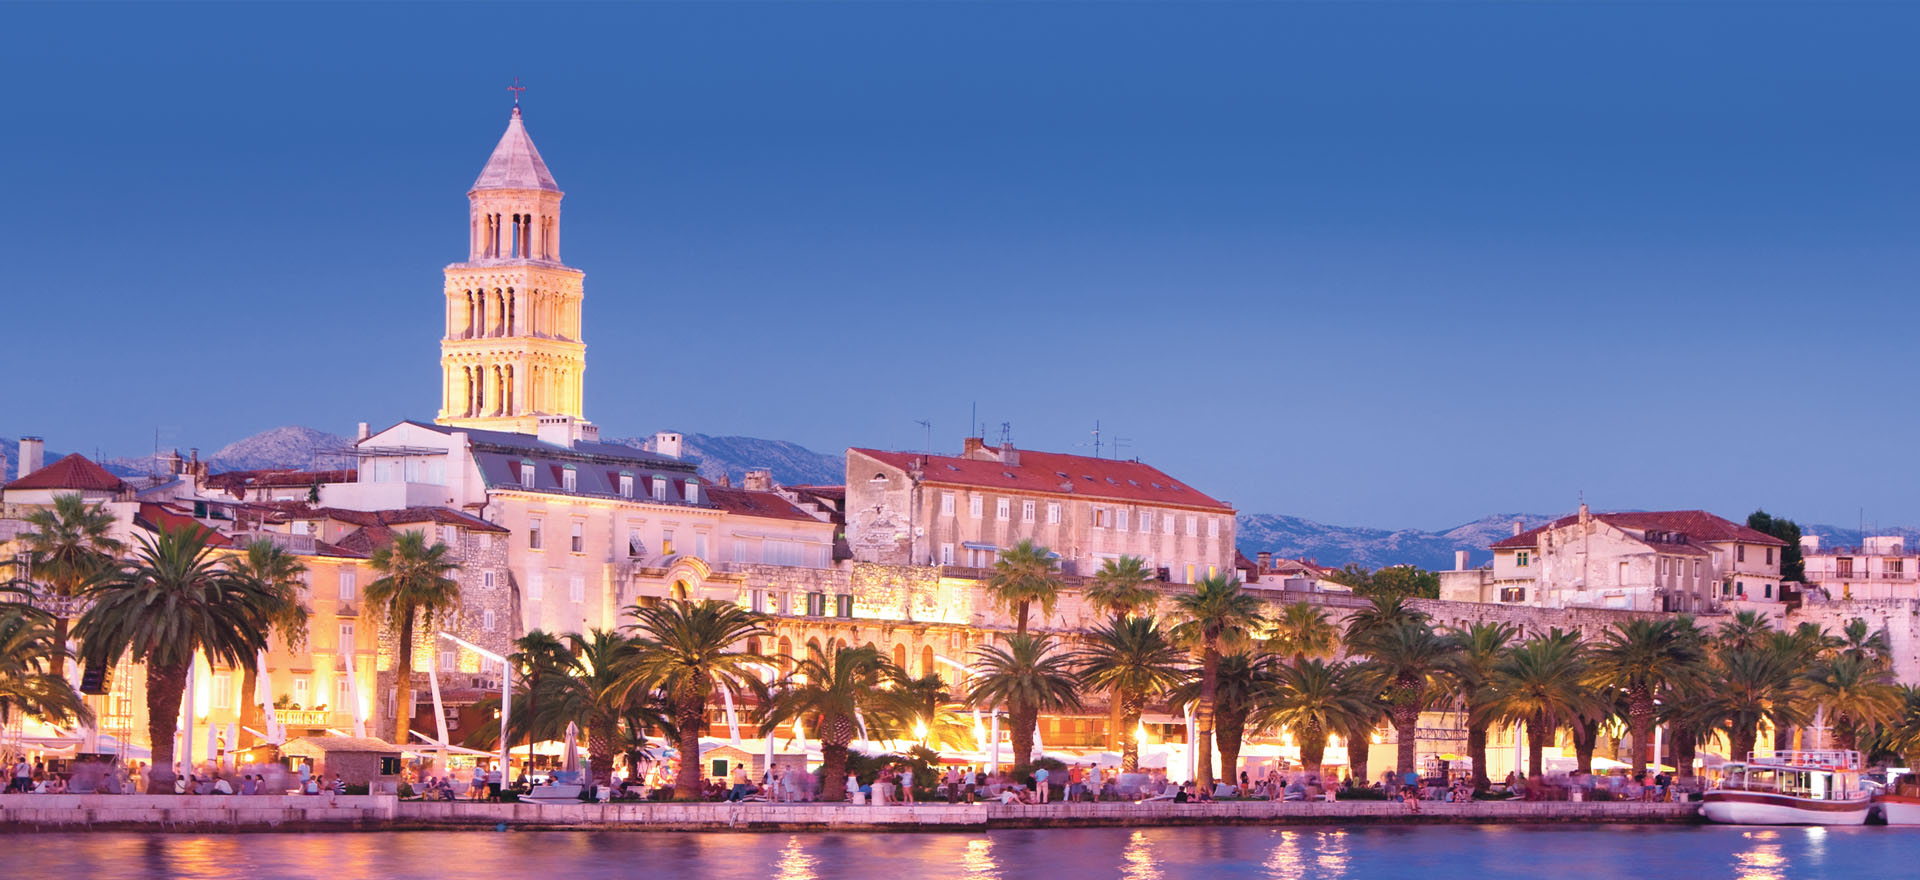 Split waterfront with palm trees in evening